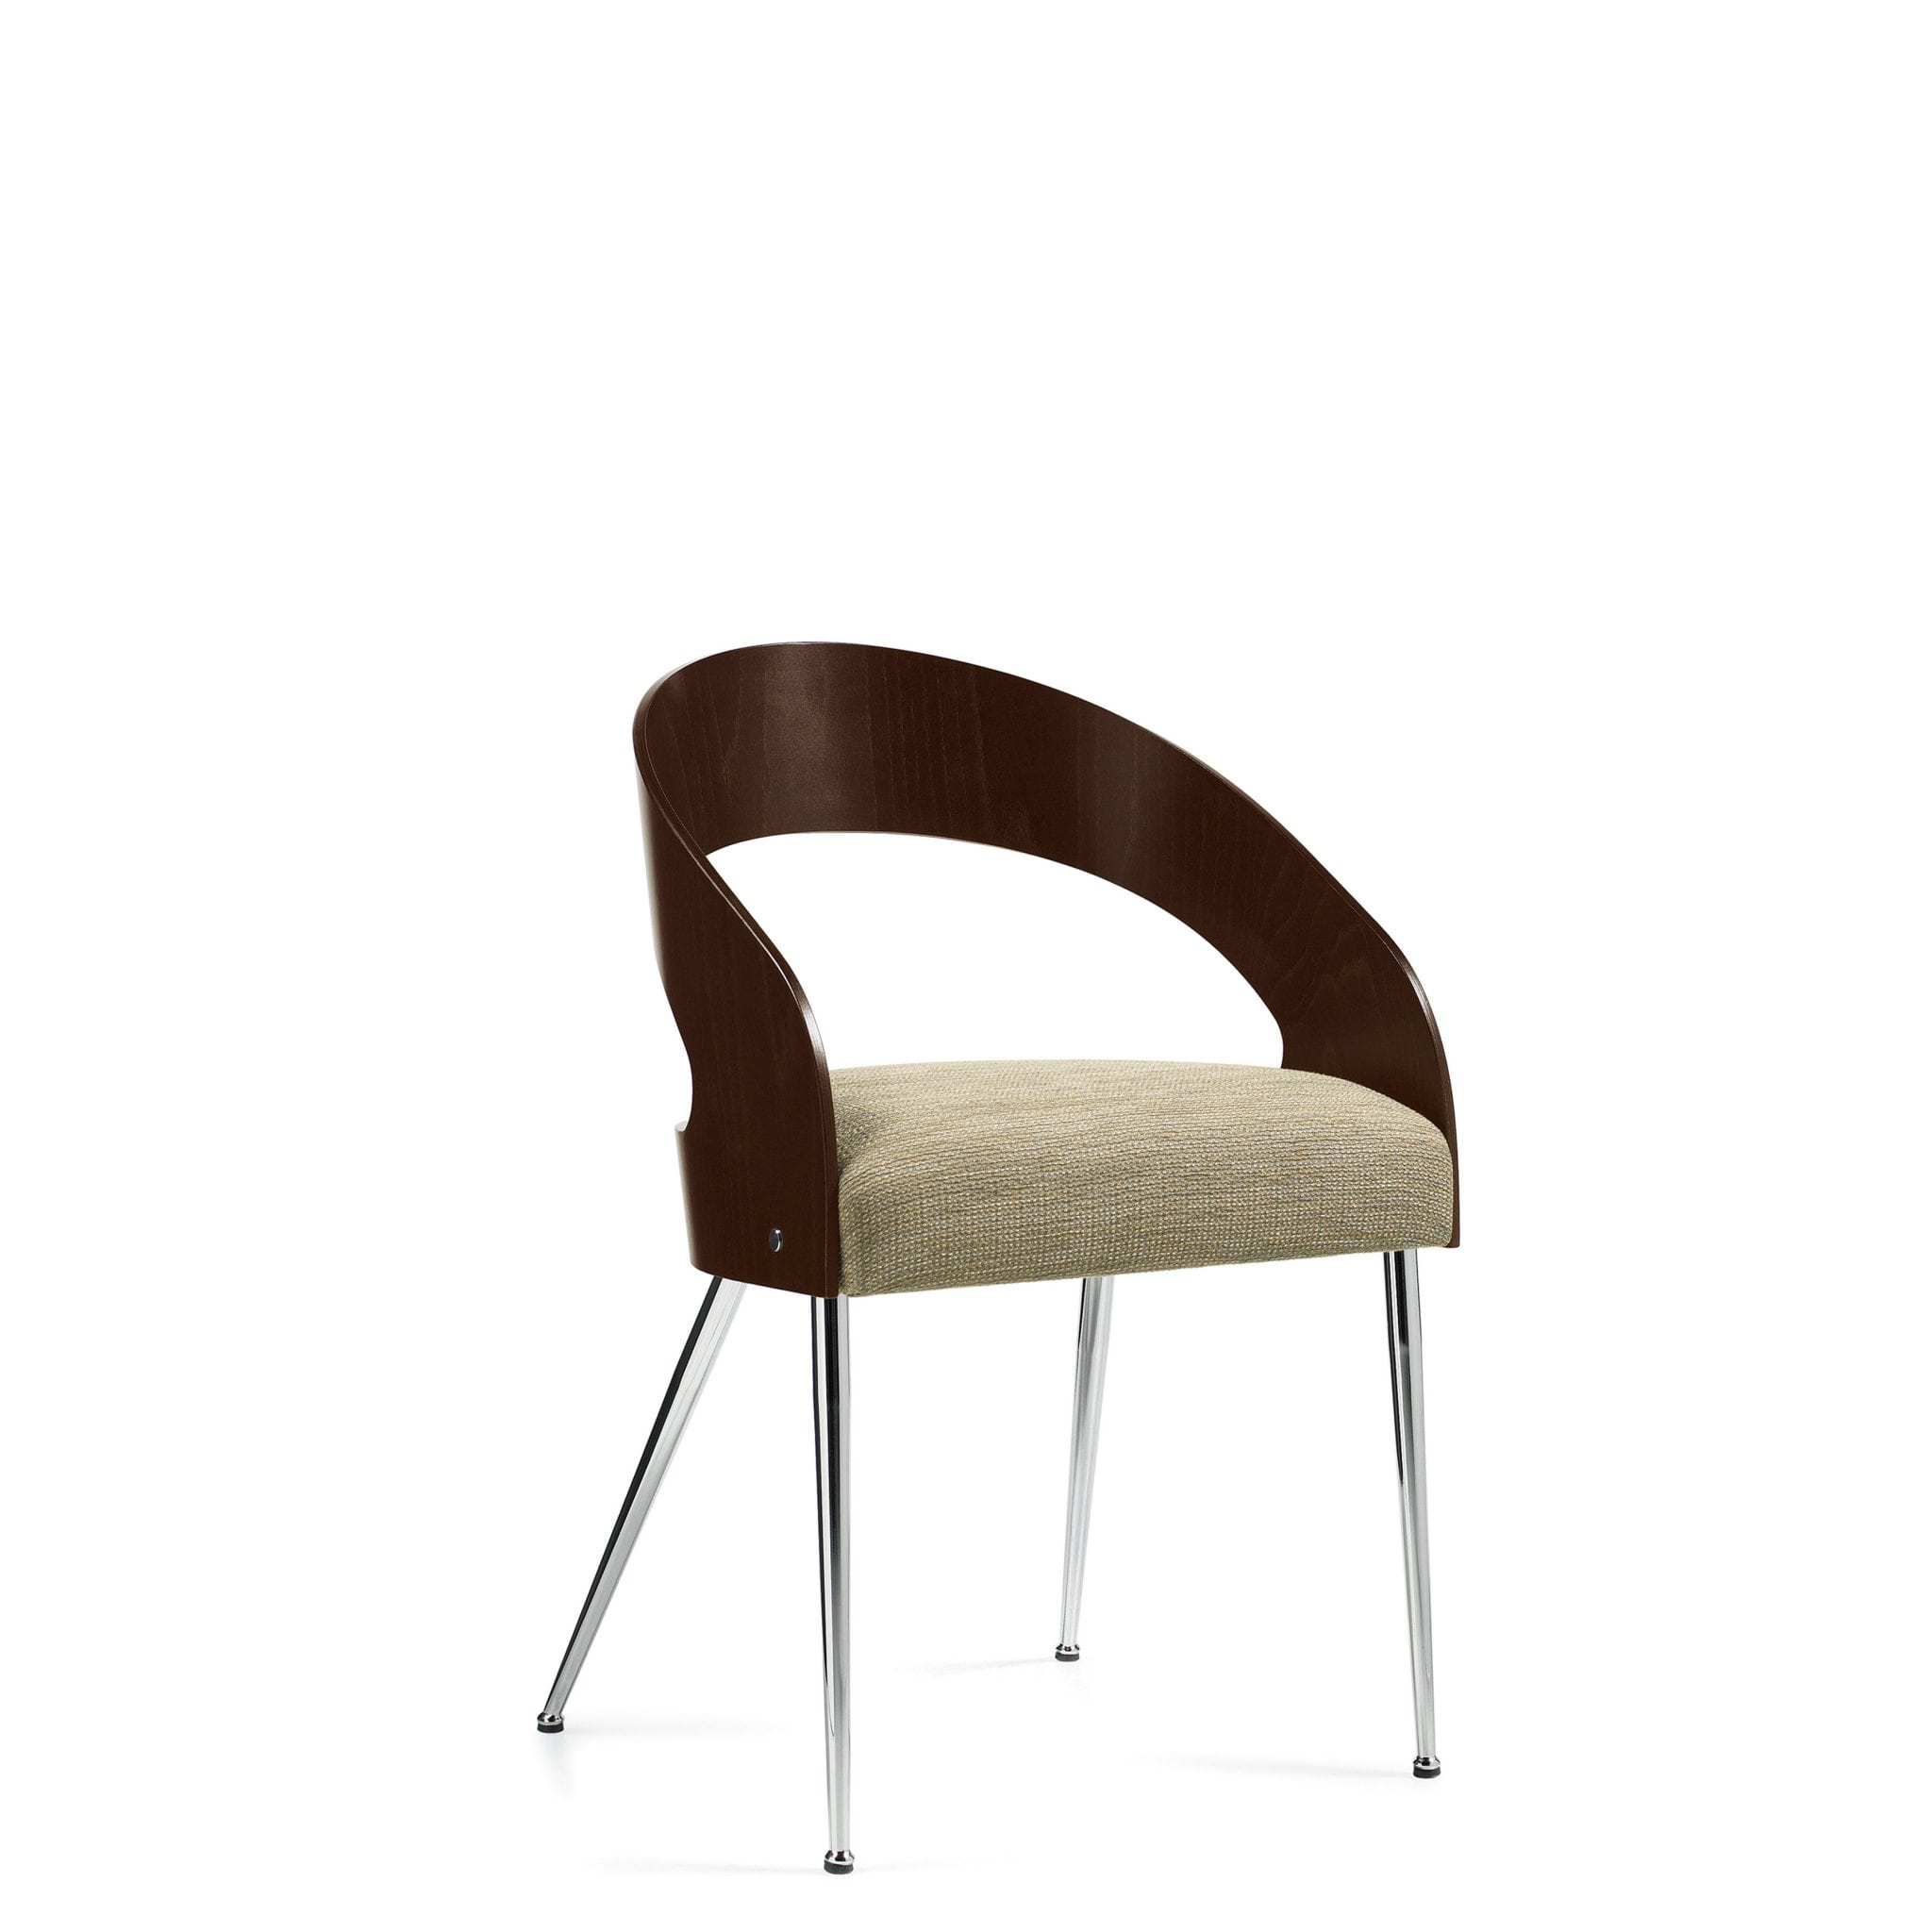 The Marche Guest Chair - Multi-use seating utilizing wood and metal design accents